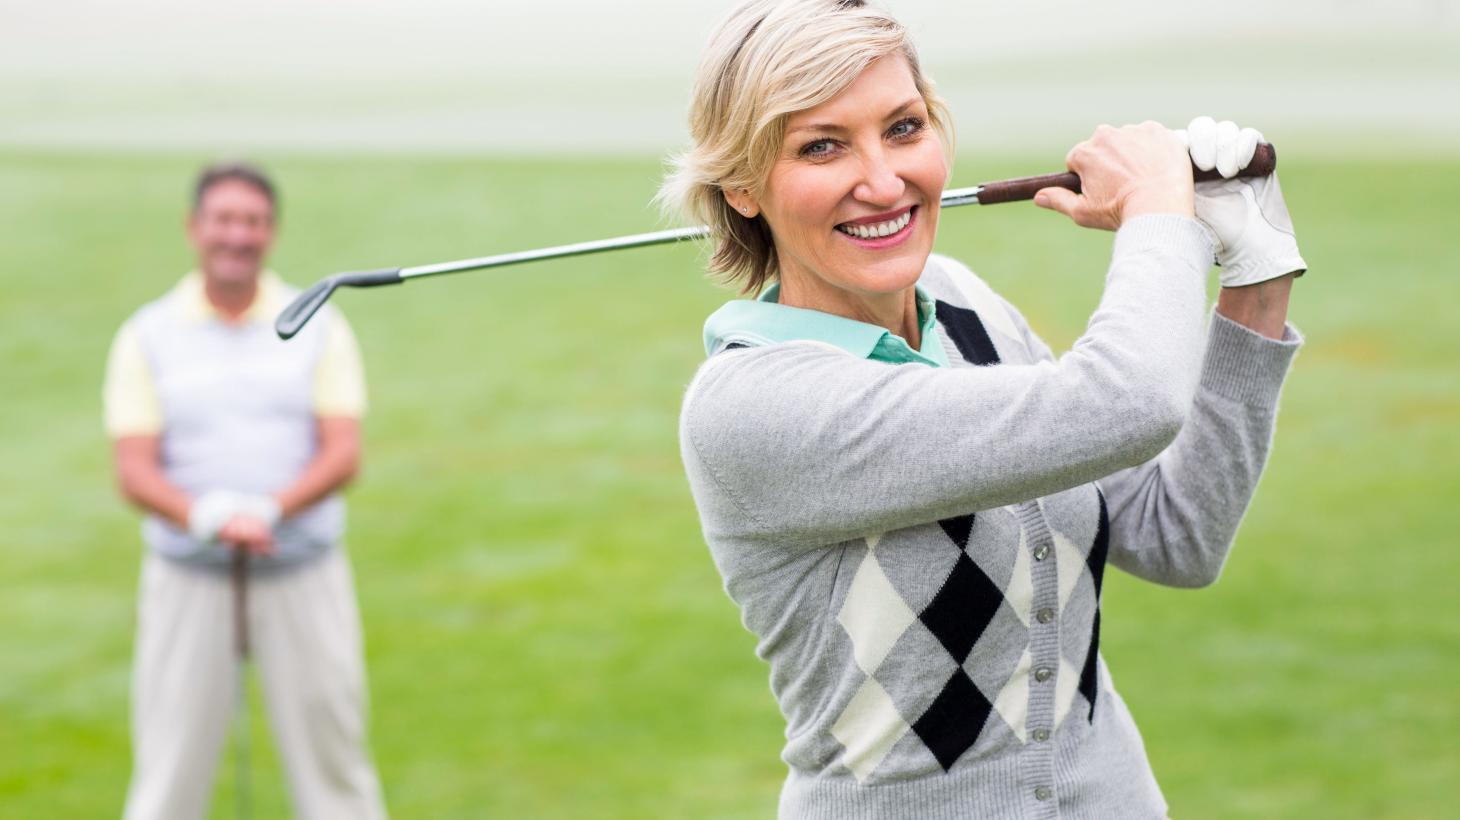 Go for the best golf tournament ideas